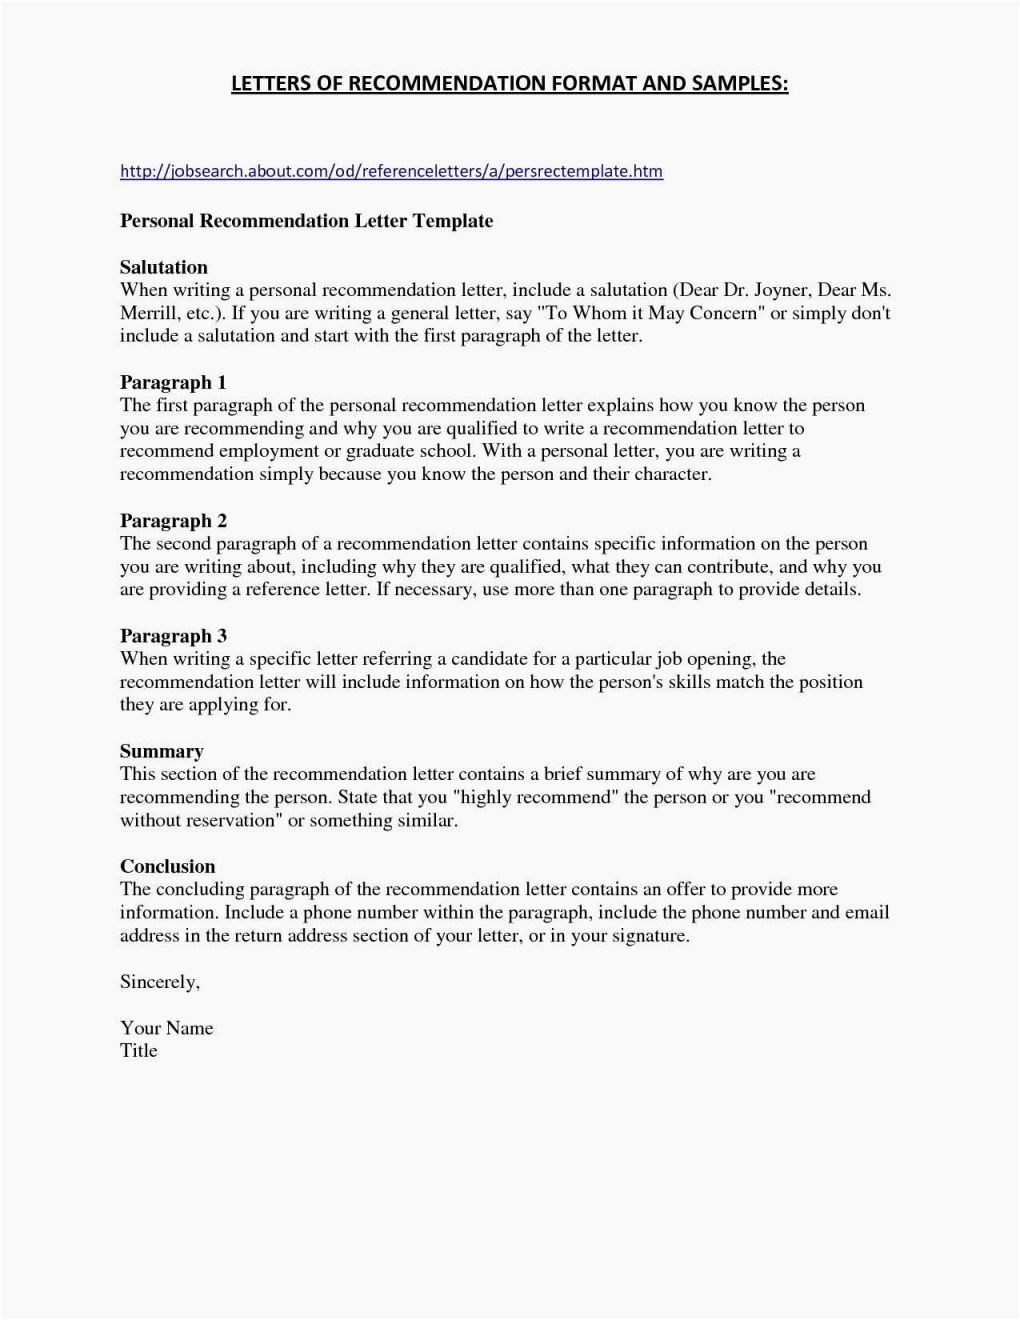 hoa violation letter template sample Collection-Back to School Letter Template top Letter to Hoa Template Qy74 – Documentaries for Change 6-m